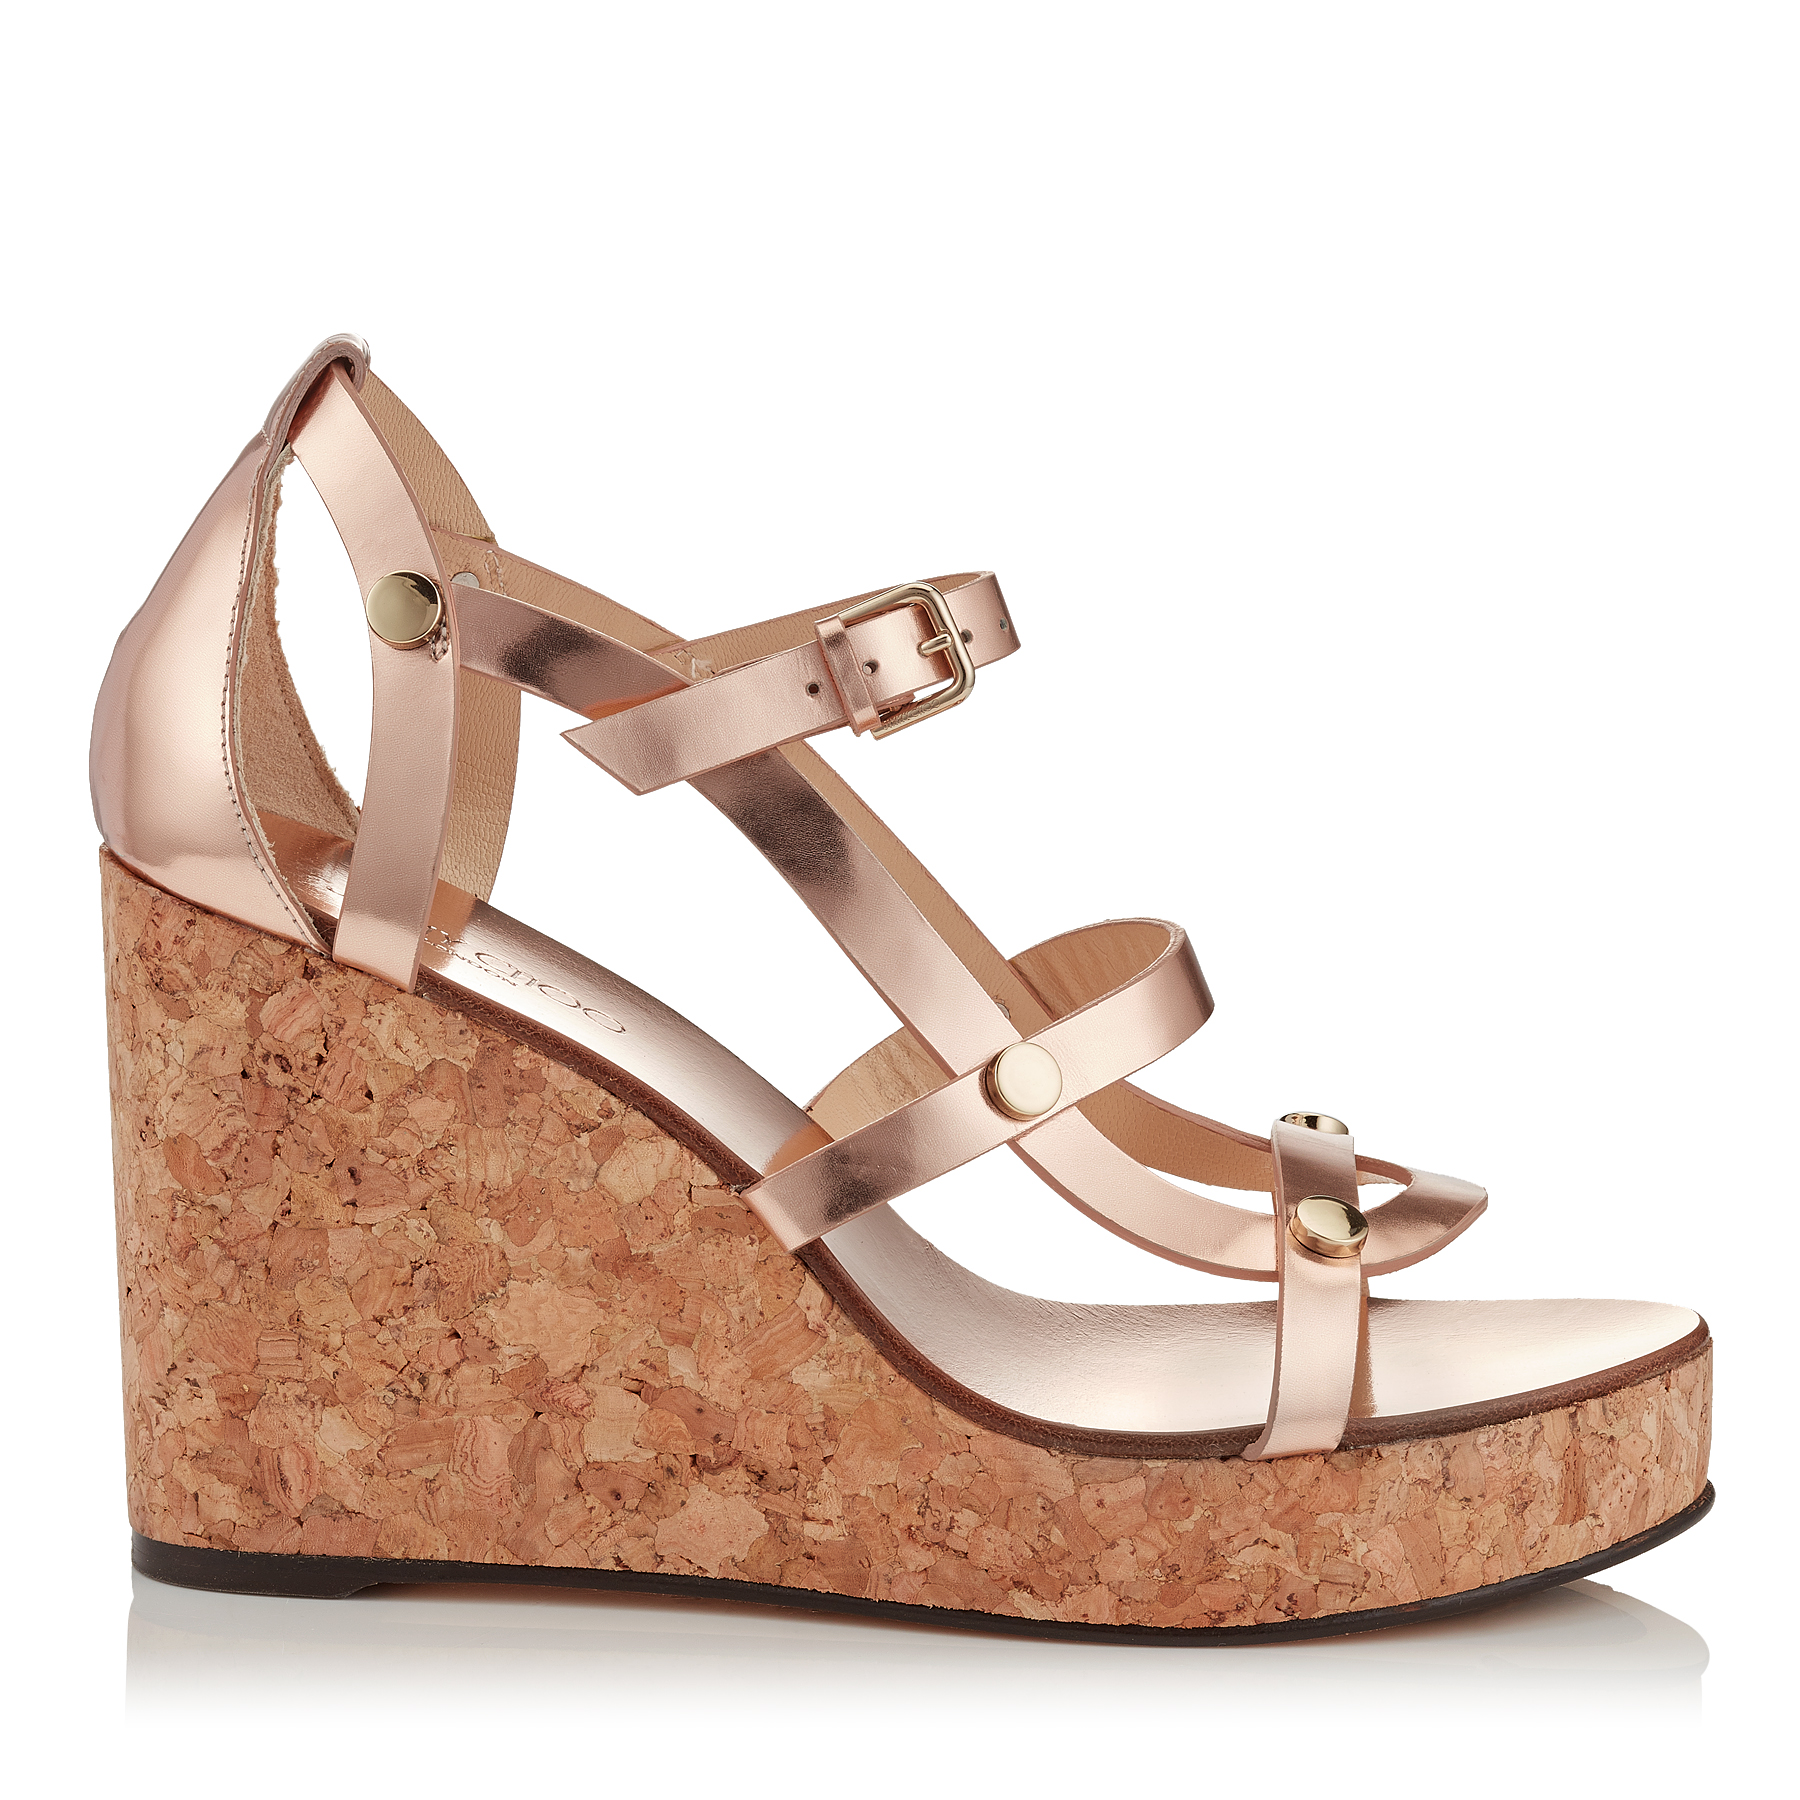 NERISSA 100 Tea Rose Mirror Leather Wedges with Studs by Jimmy Choo